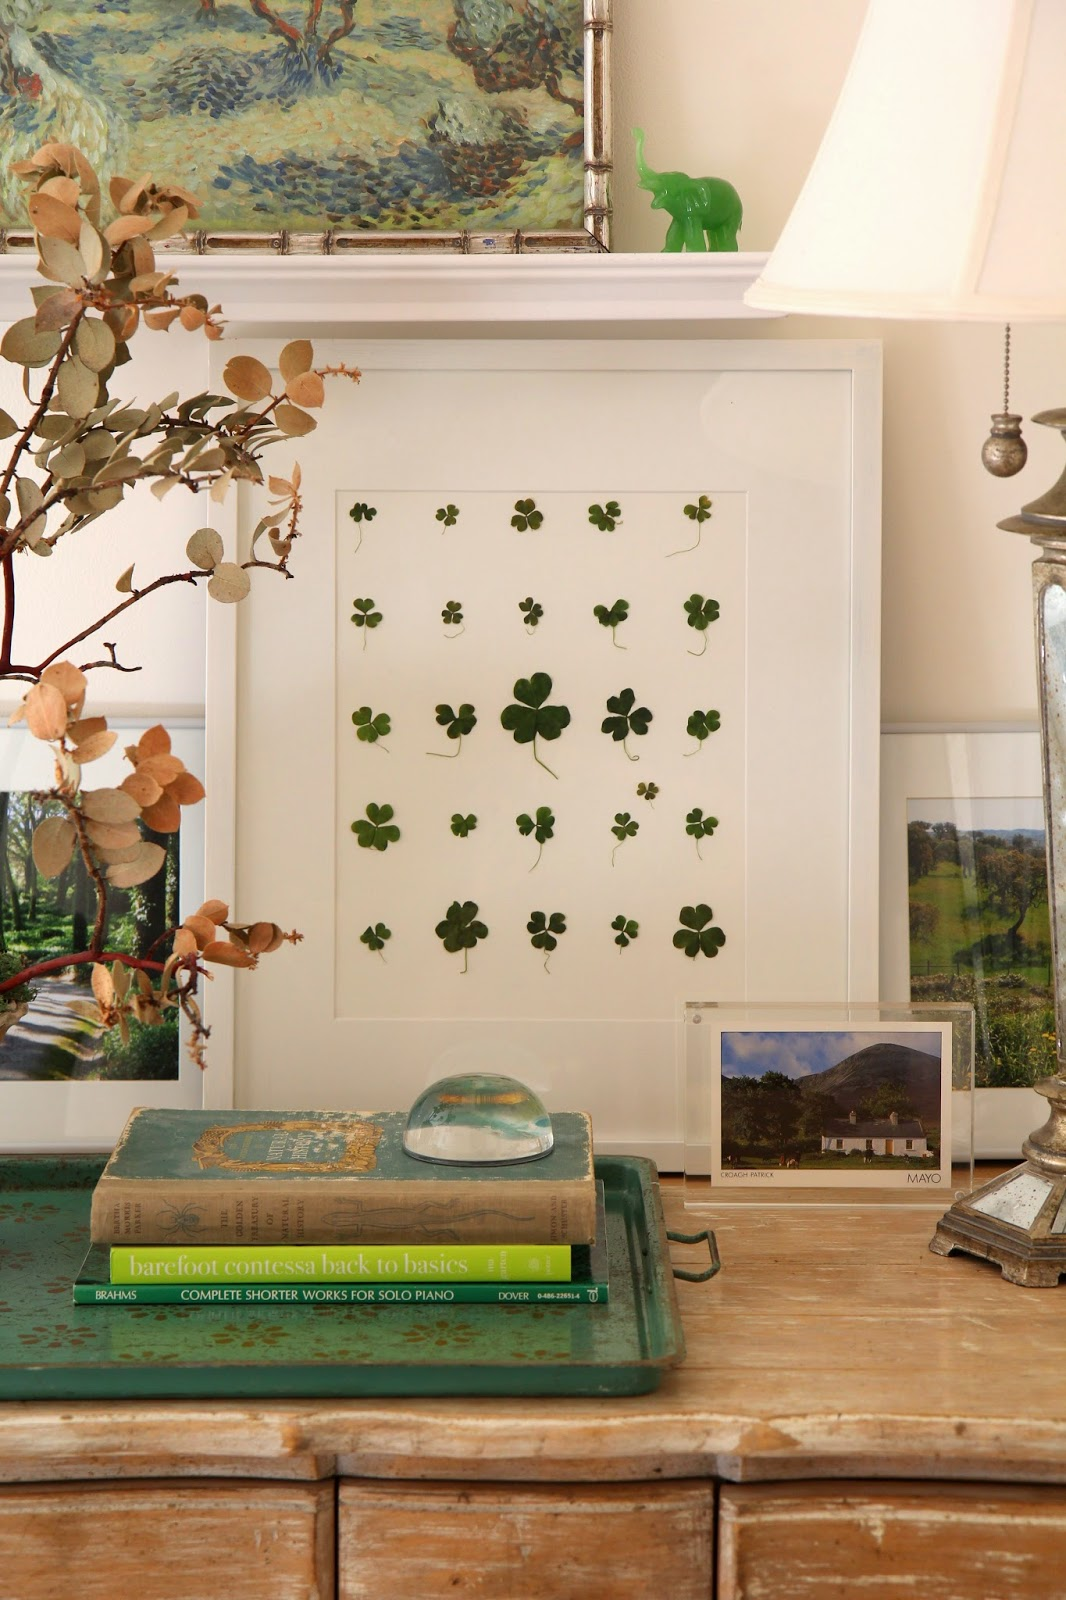 St. Patrick's Day Decor with Clover Herbarium